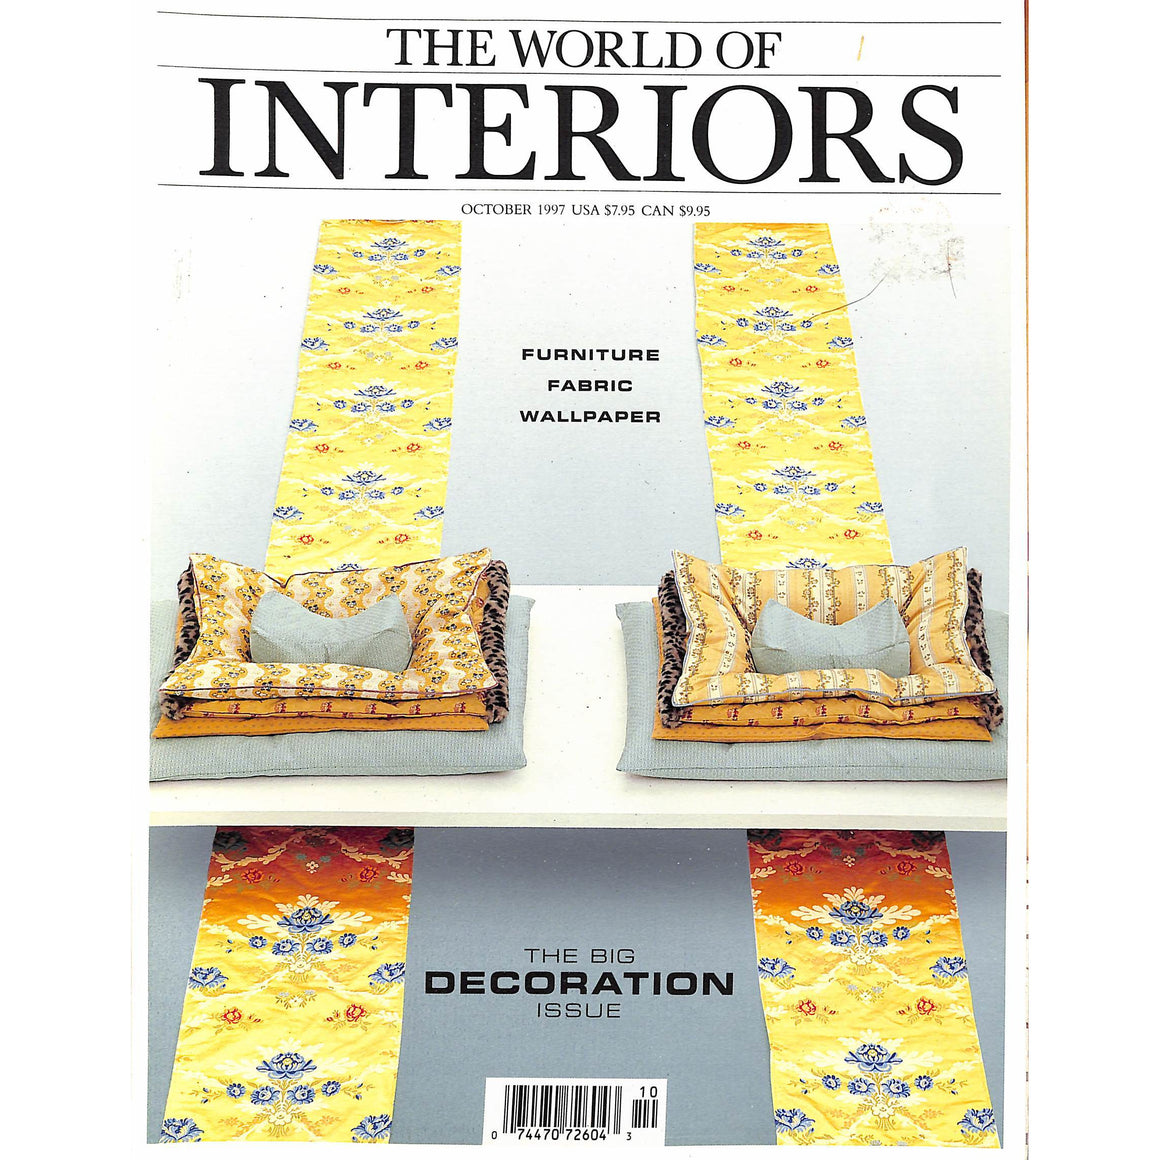 The World of Interiors October 1997